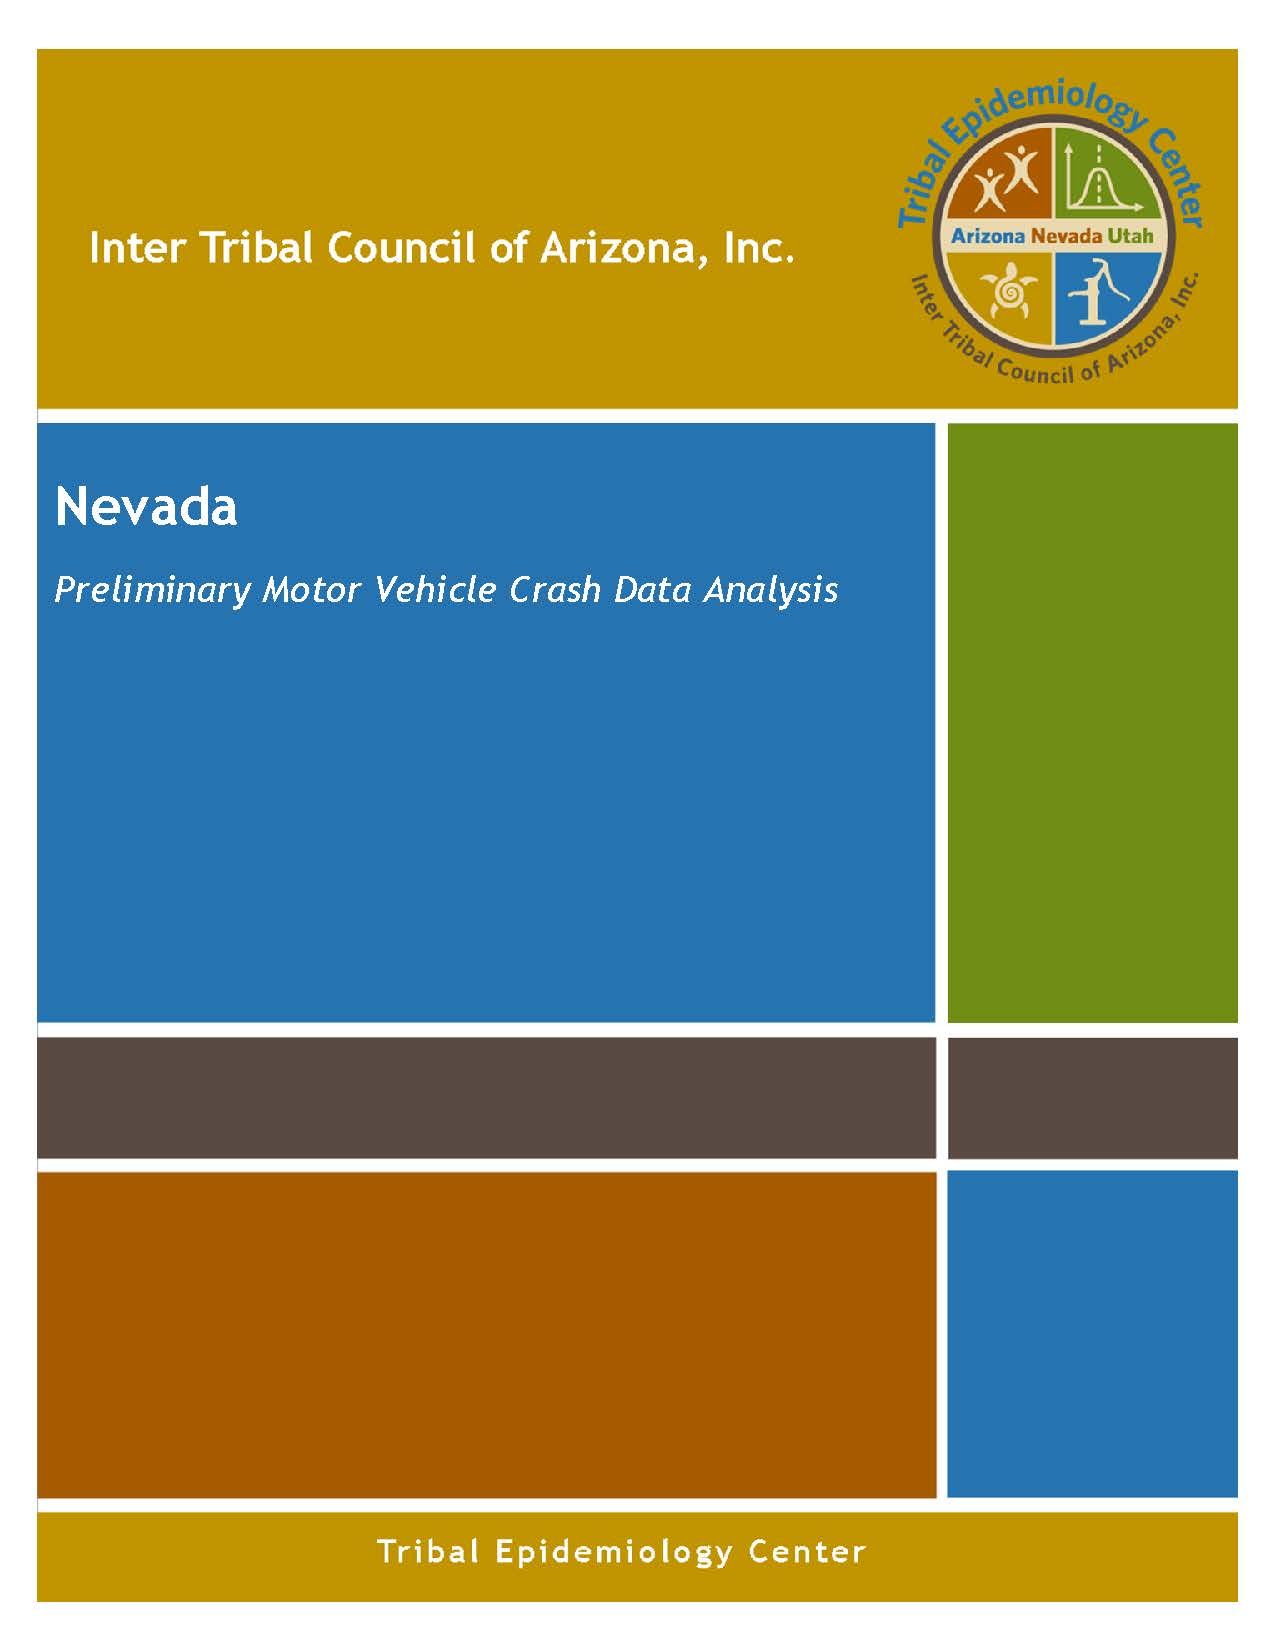 Nevada Preliminary Motor Vehicle Crash Data Analysis